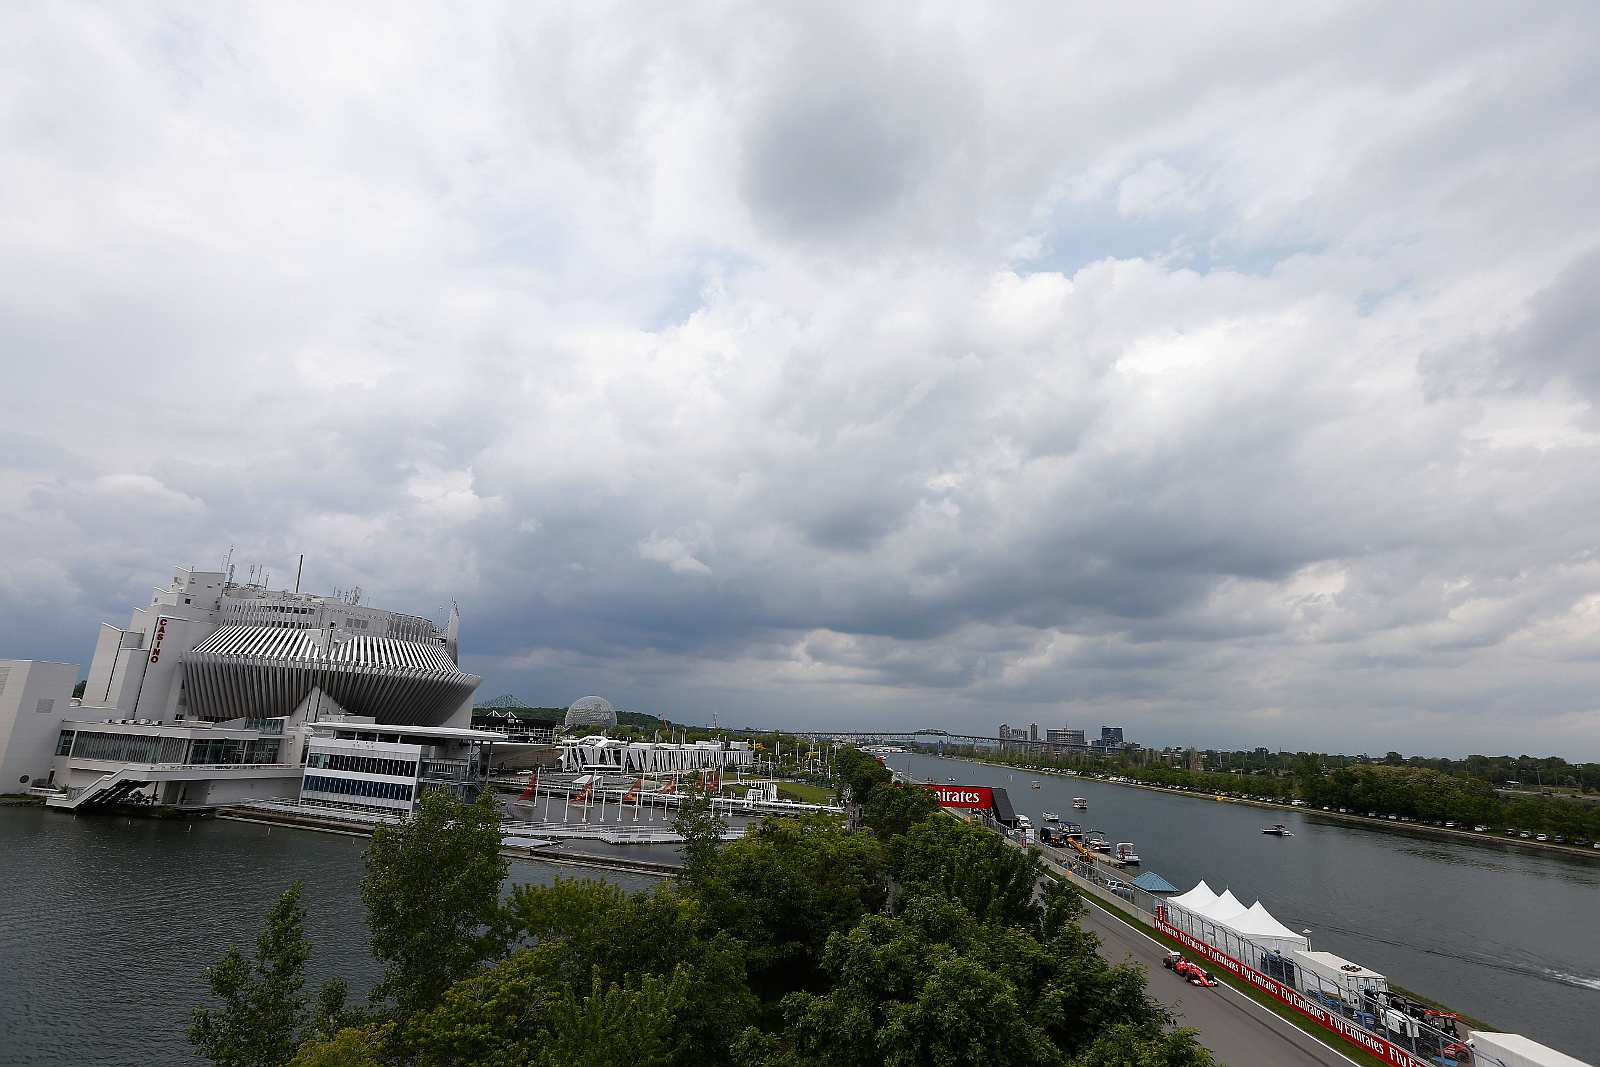 Montreal Casino and race track